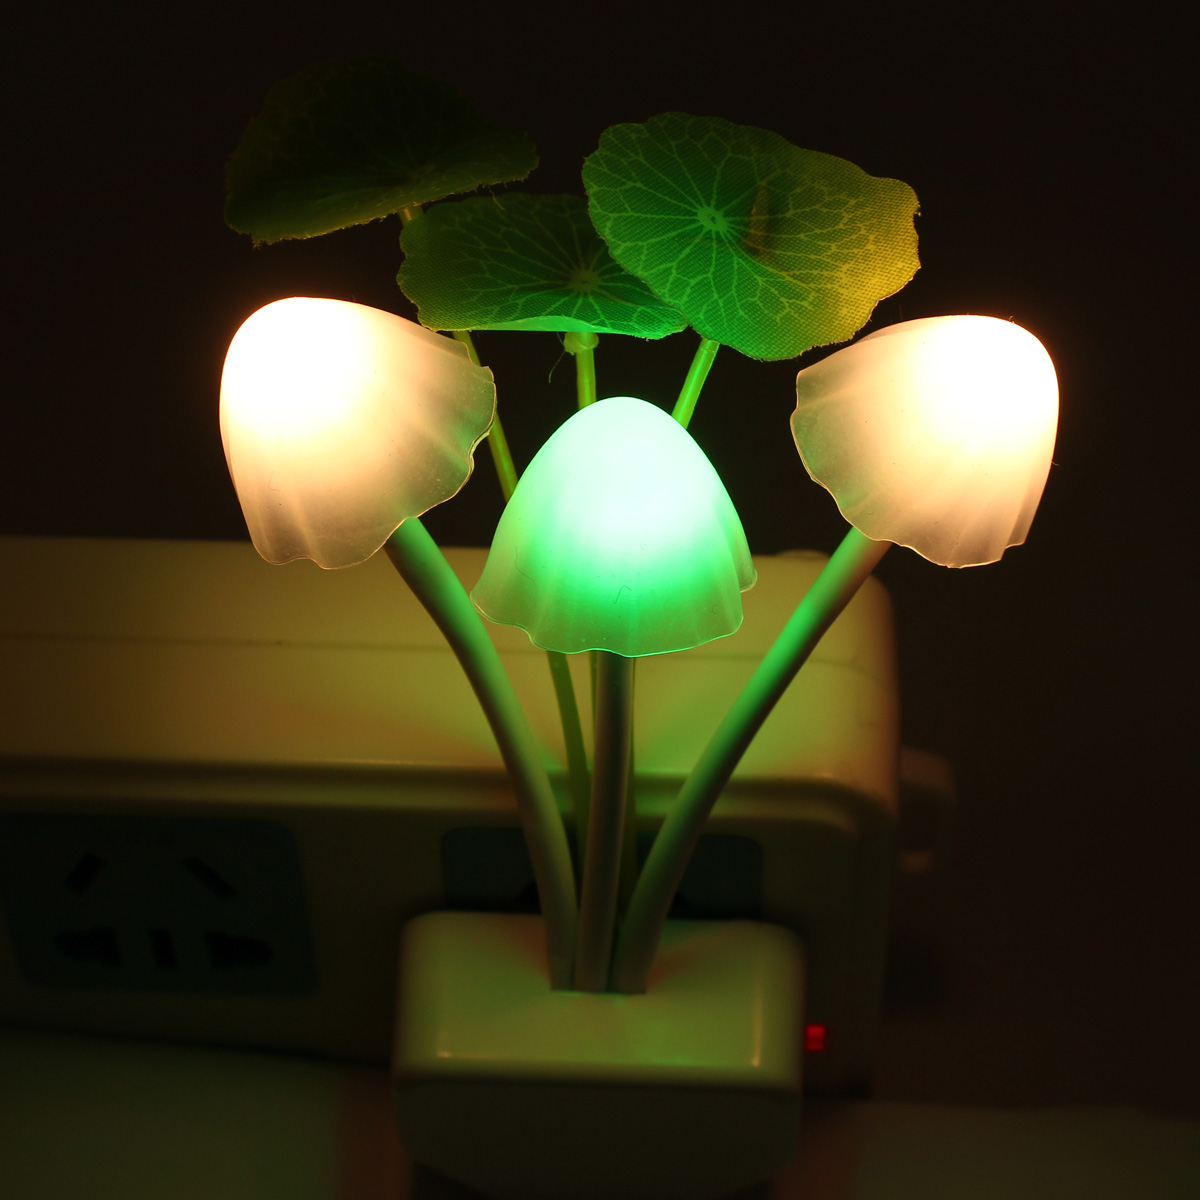 AC 220V Romantic Colorful Sensor LED Mushroom Night Light